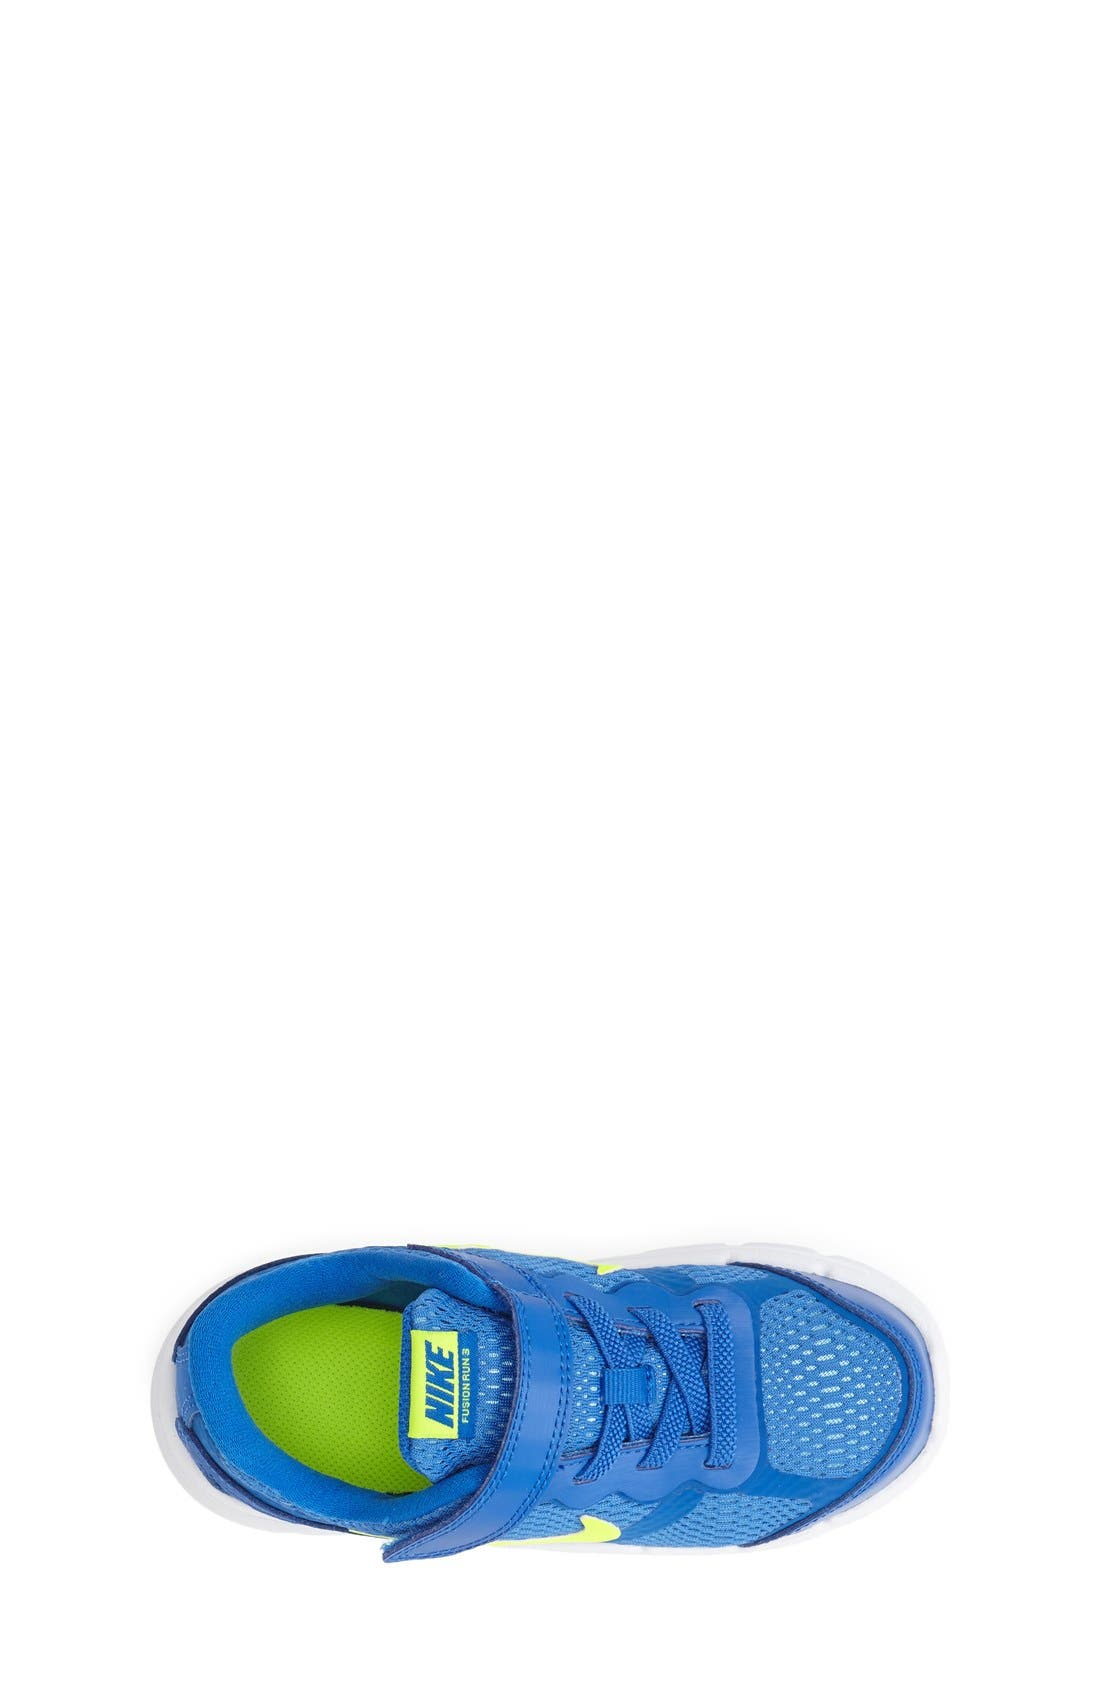 Alternate Image 3  - Nike 'Dual Fusion Run 3' Athletic Shoe (Baby, Walker & Toddler) (Online Only)